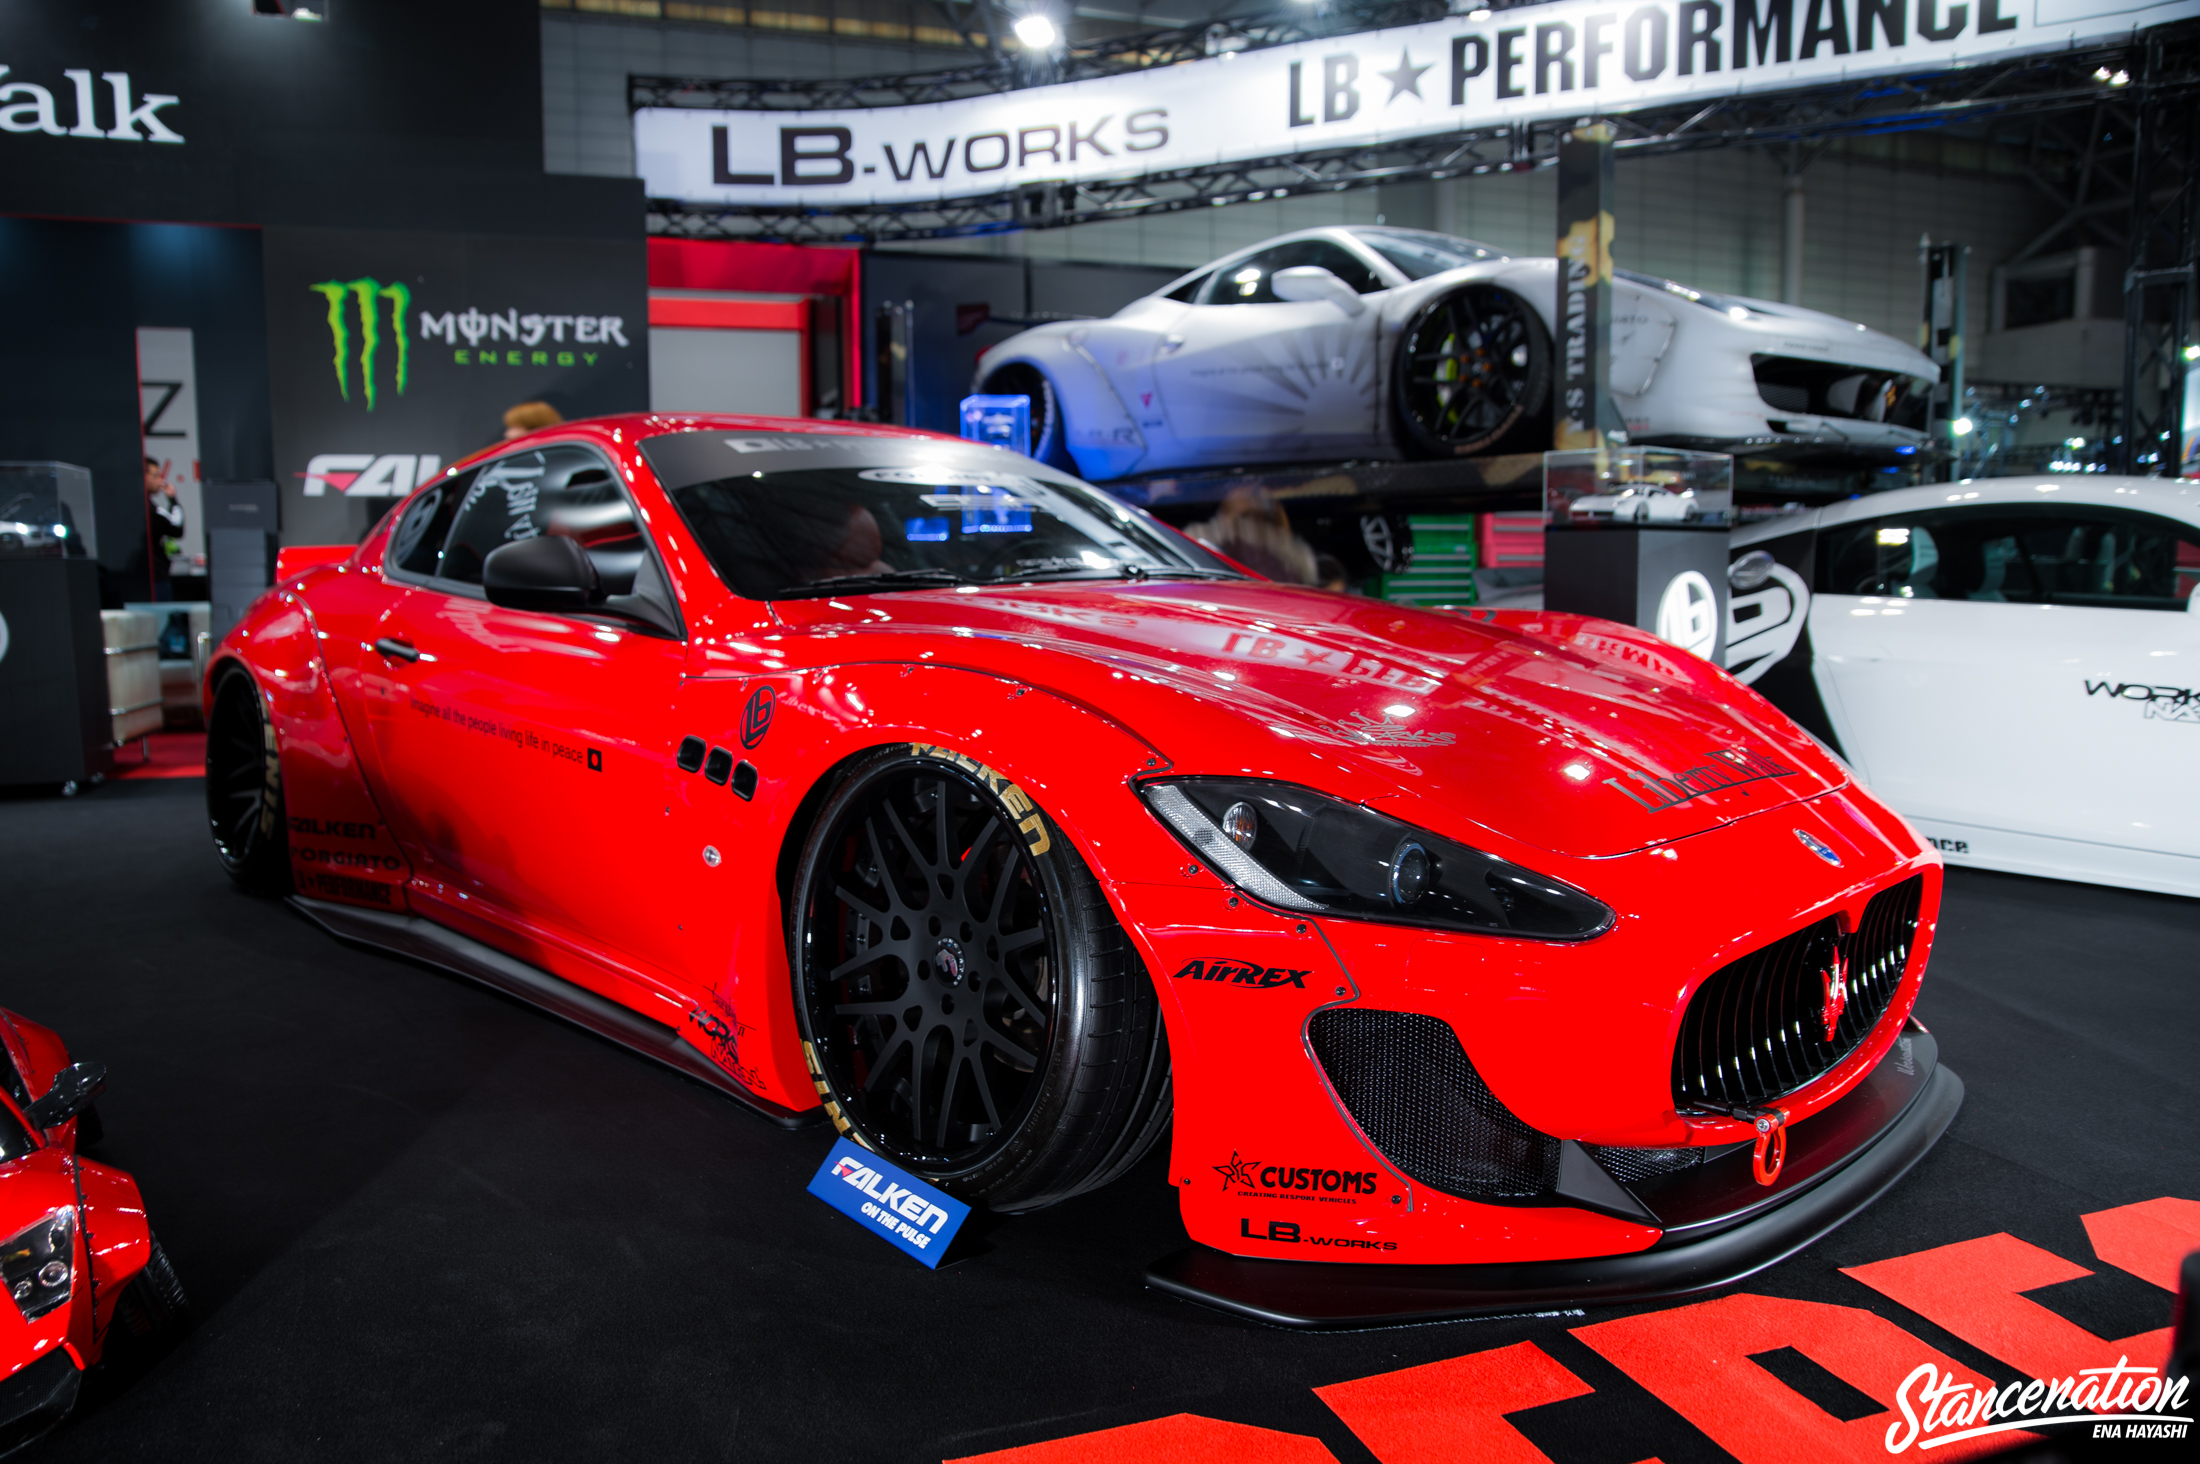 Tokyo auto salon 2016 photo coverage part 2 anything for The car salon